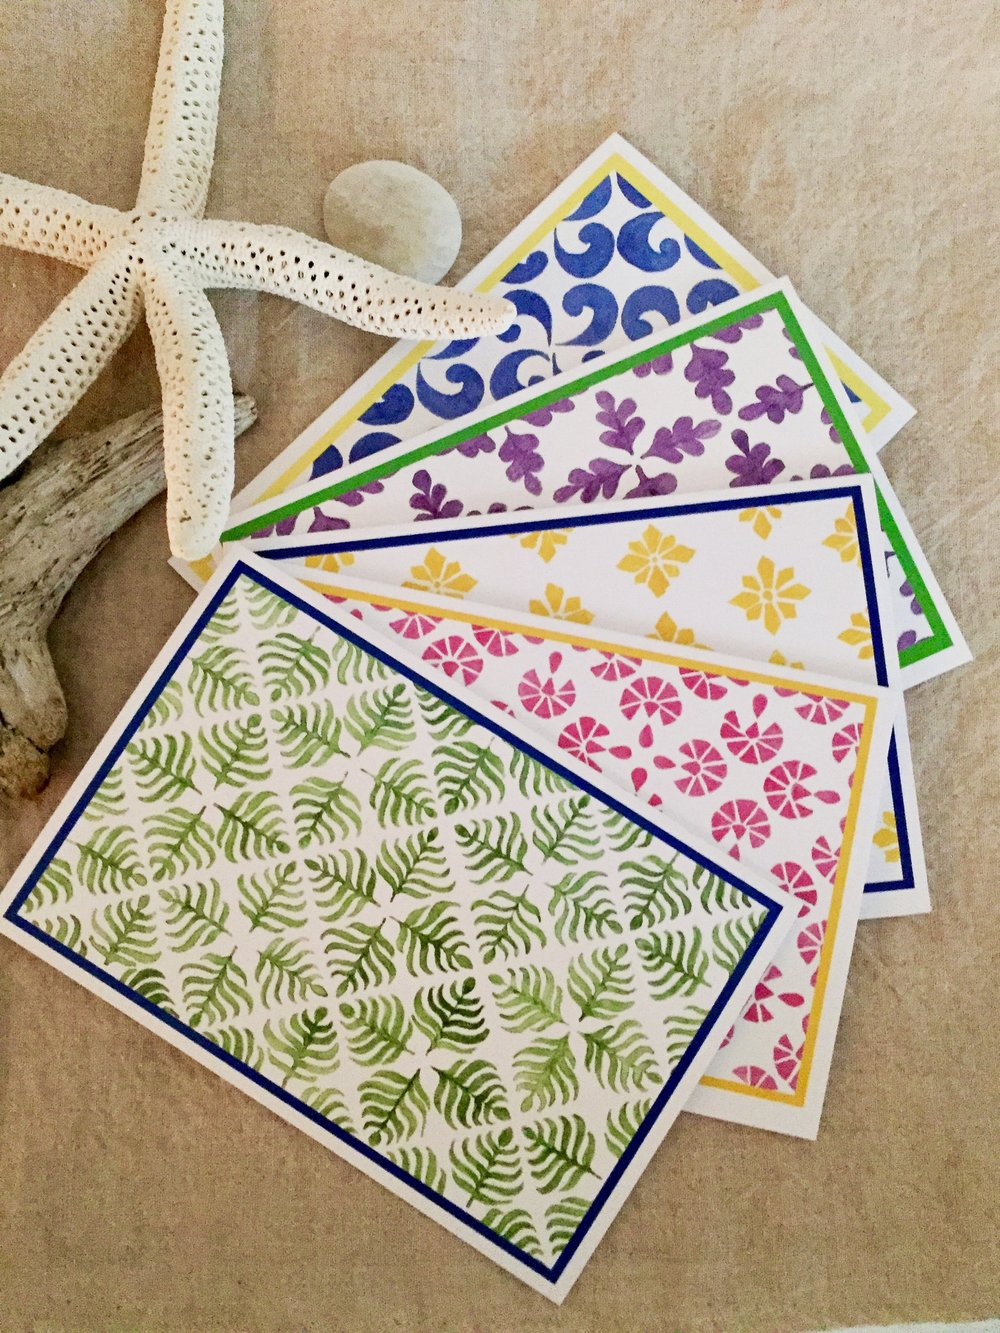 Reminiscent of the colorful tiles in Portugal, these hand painted notecards are bright and beautiful.  2 of each design with coordinated white envelopes are presented in a simple box with a clear cover.  Brighten someone's day with a personal handwritten note in their mail!